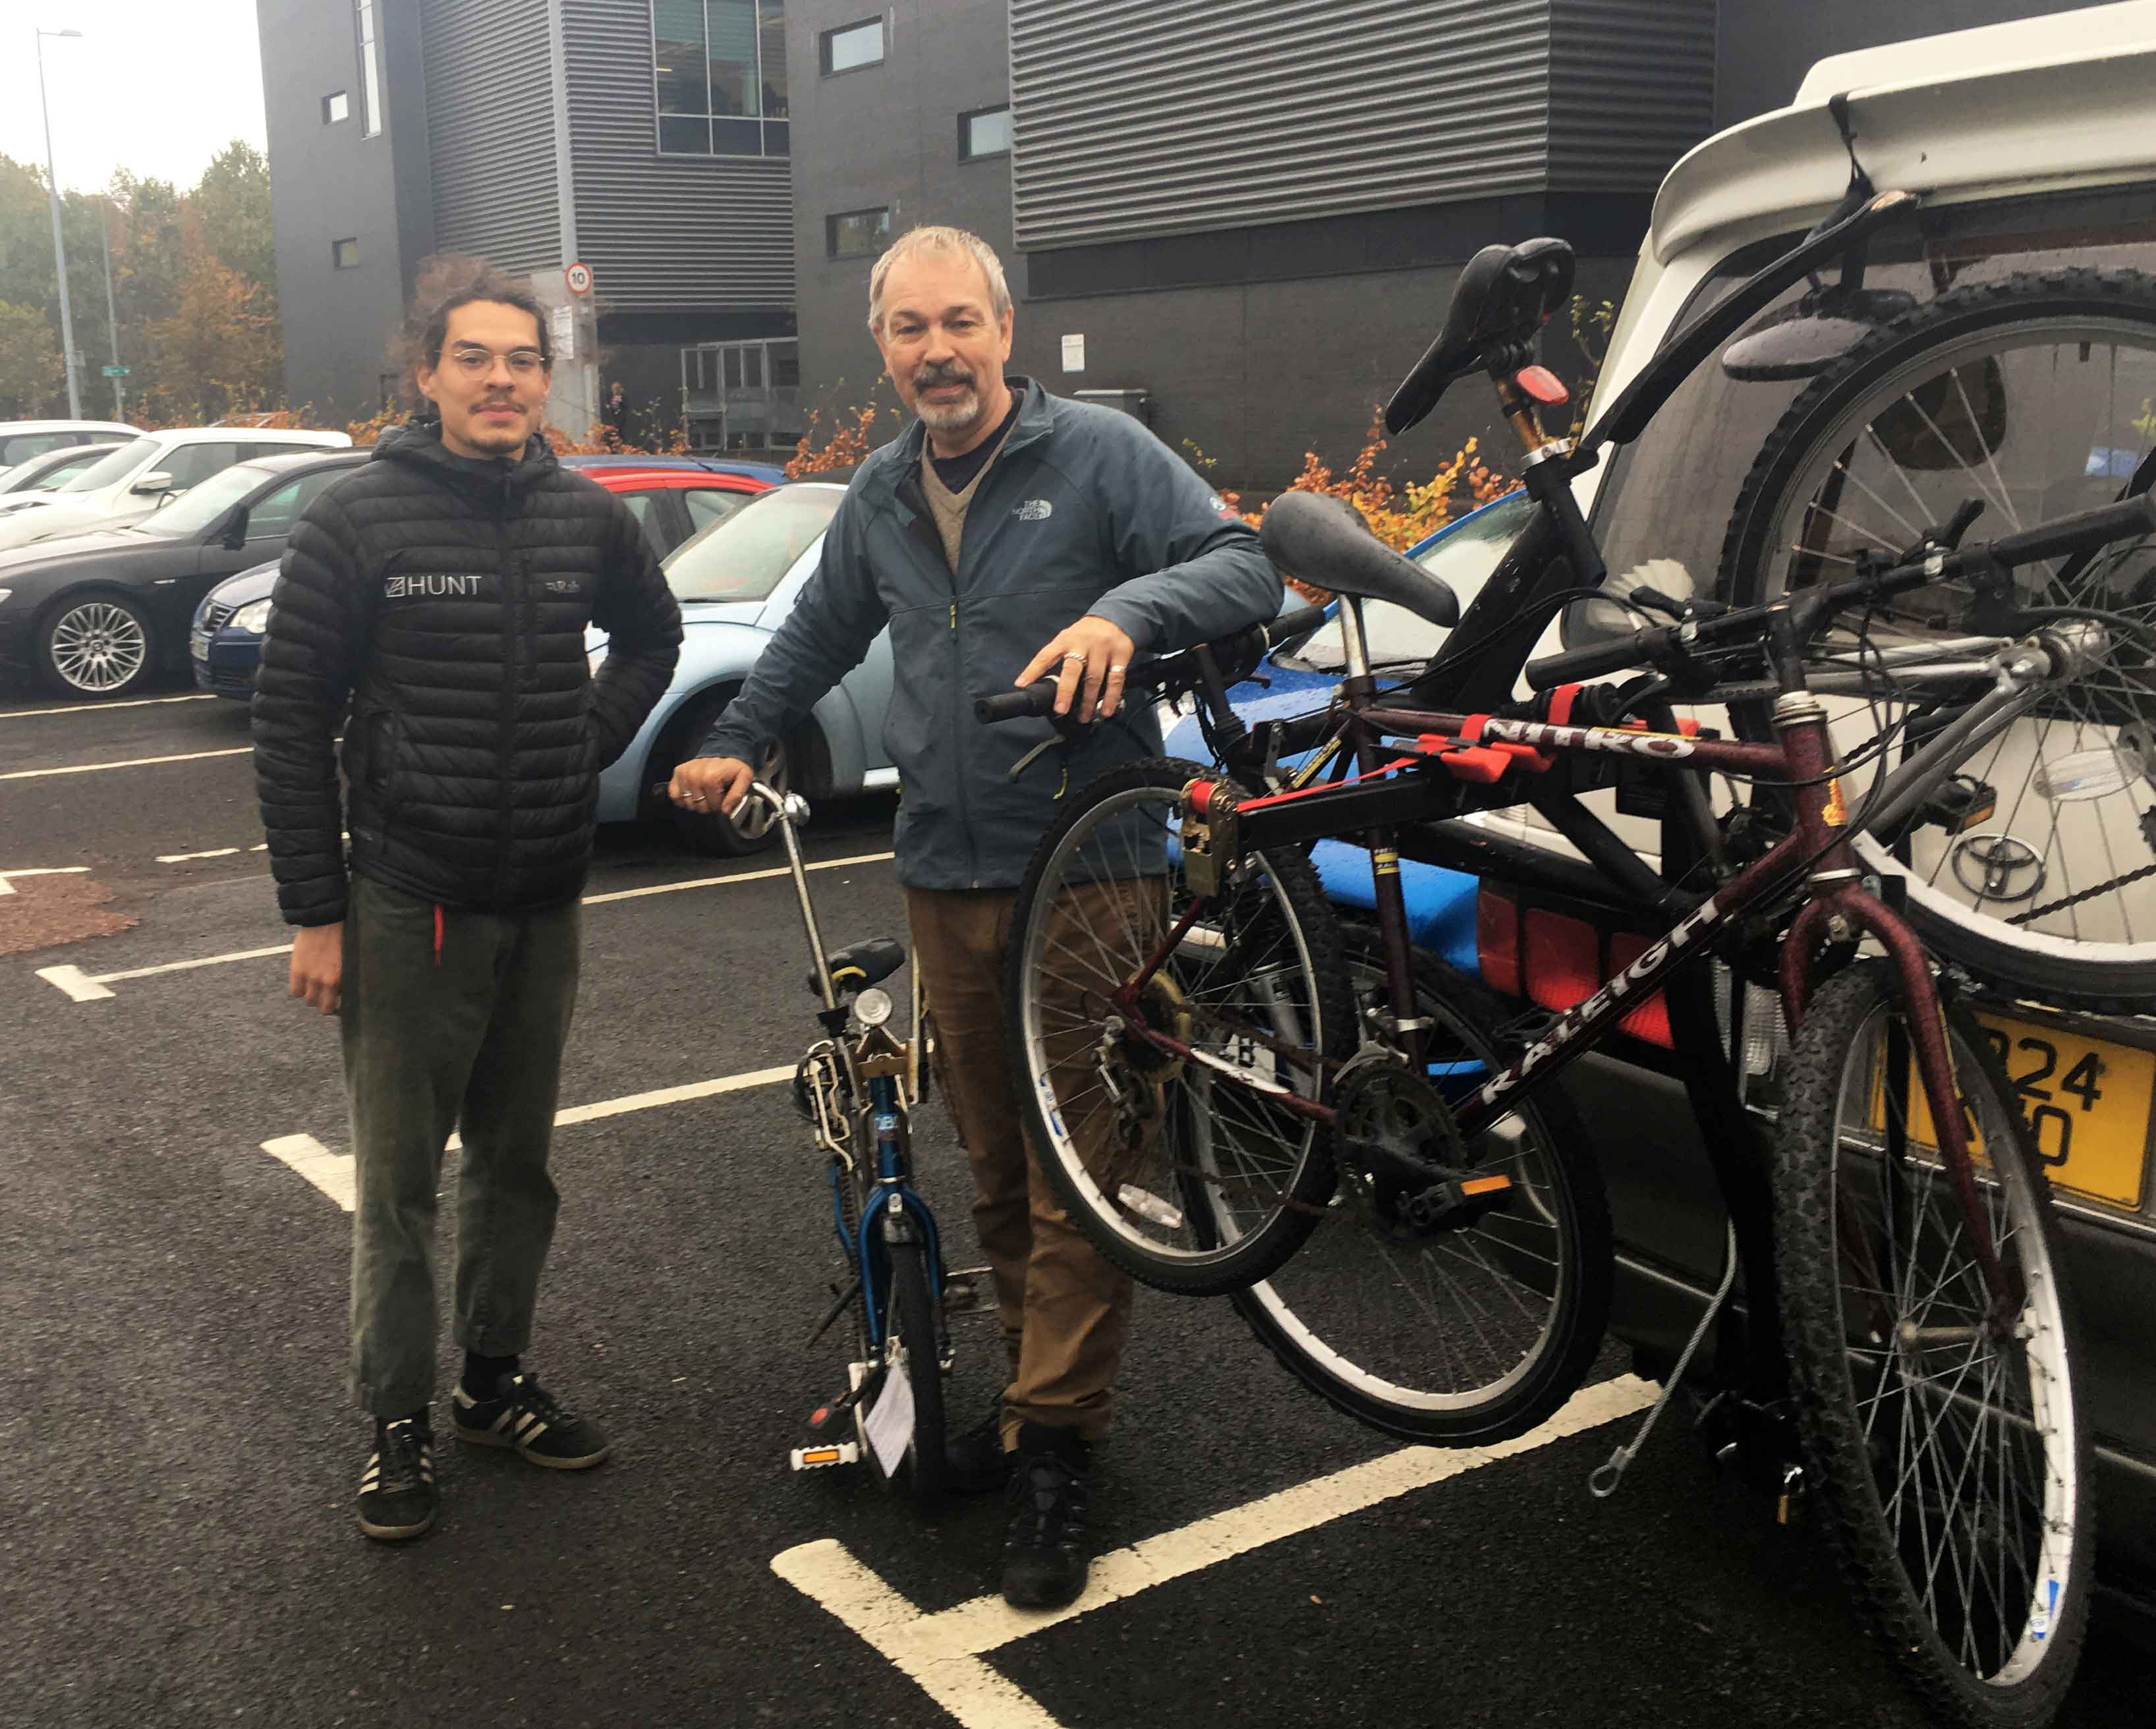 Mechanic Sharif Elsabagh and founder/director of Bikes for Refugees Scotland Steven McCluskey collect donated bikes at Edinburgh Napier's Sighthill campus